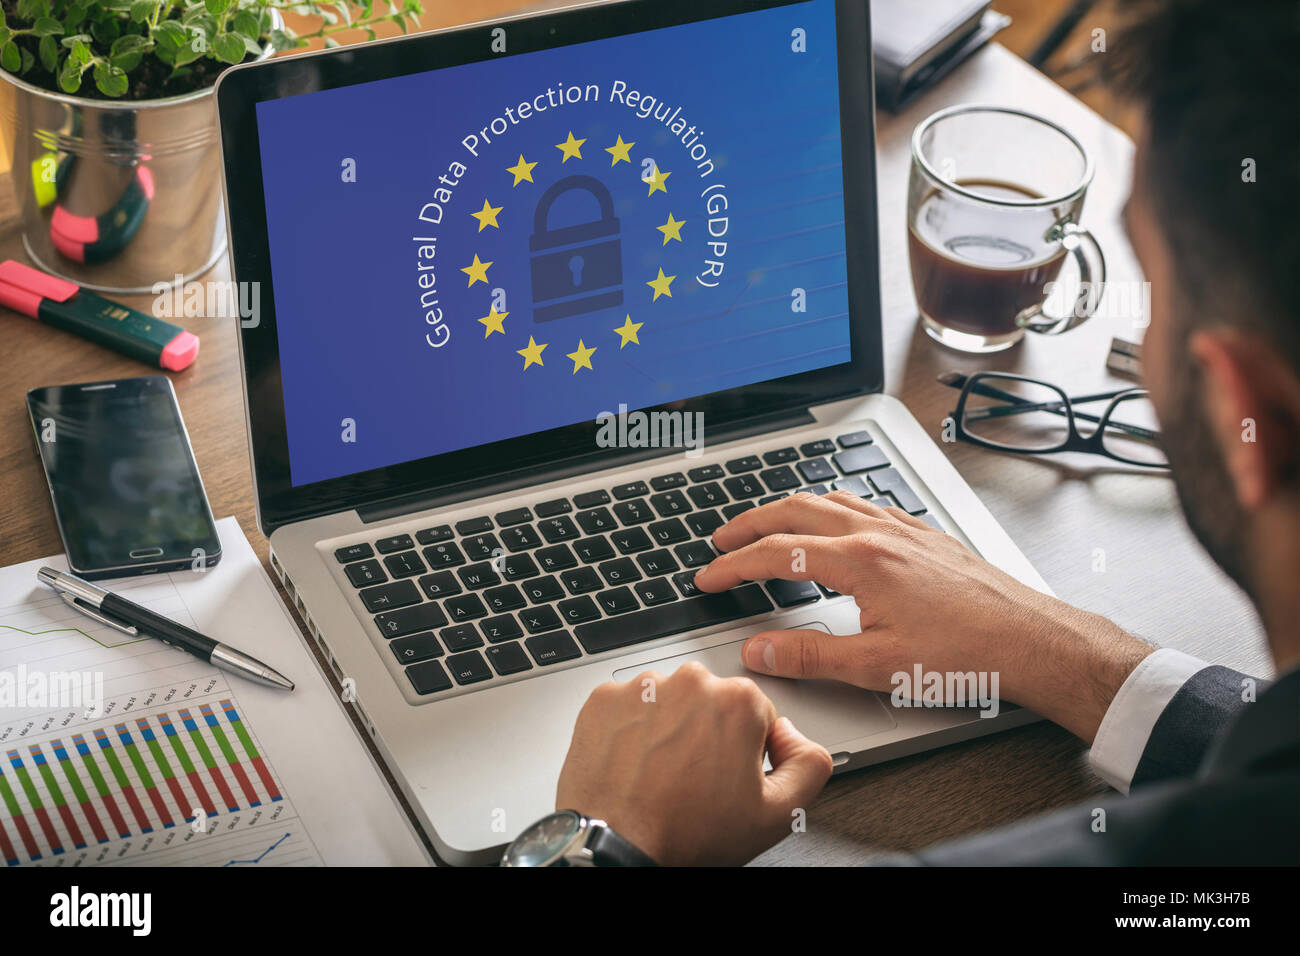 EU GDPR. Man working with a computer, General Data Protection Regulation and European Union flag on the screen - Stock Image